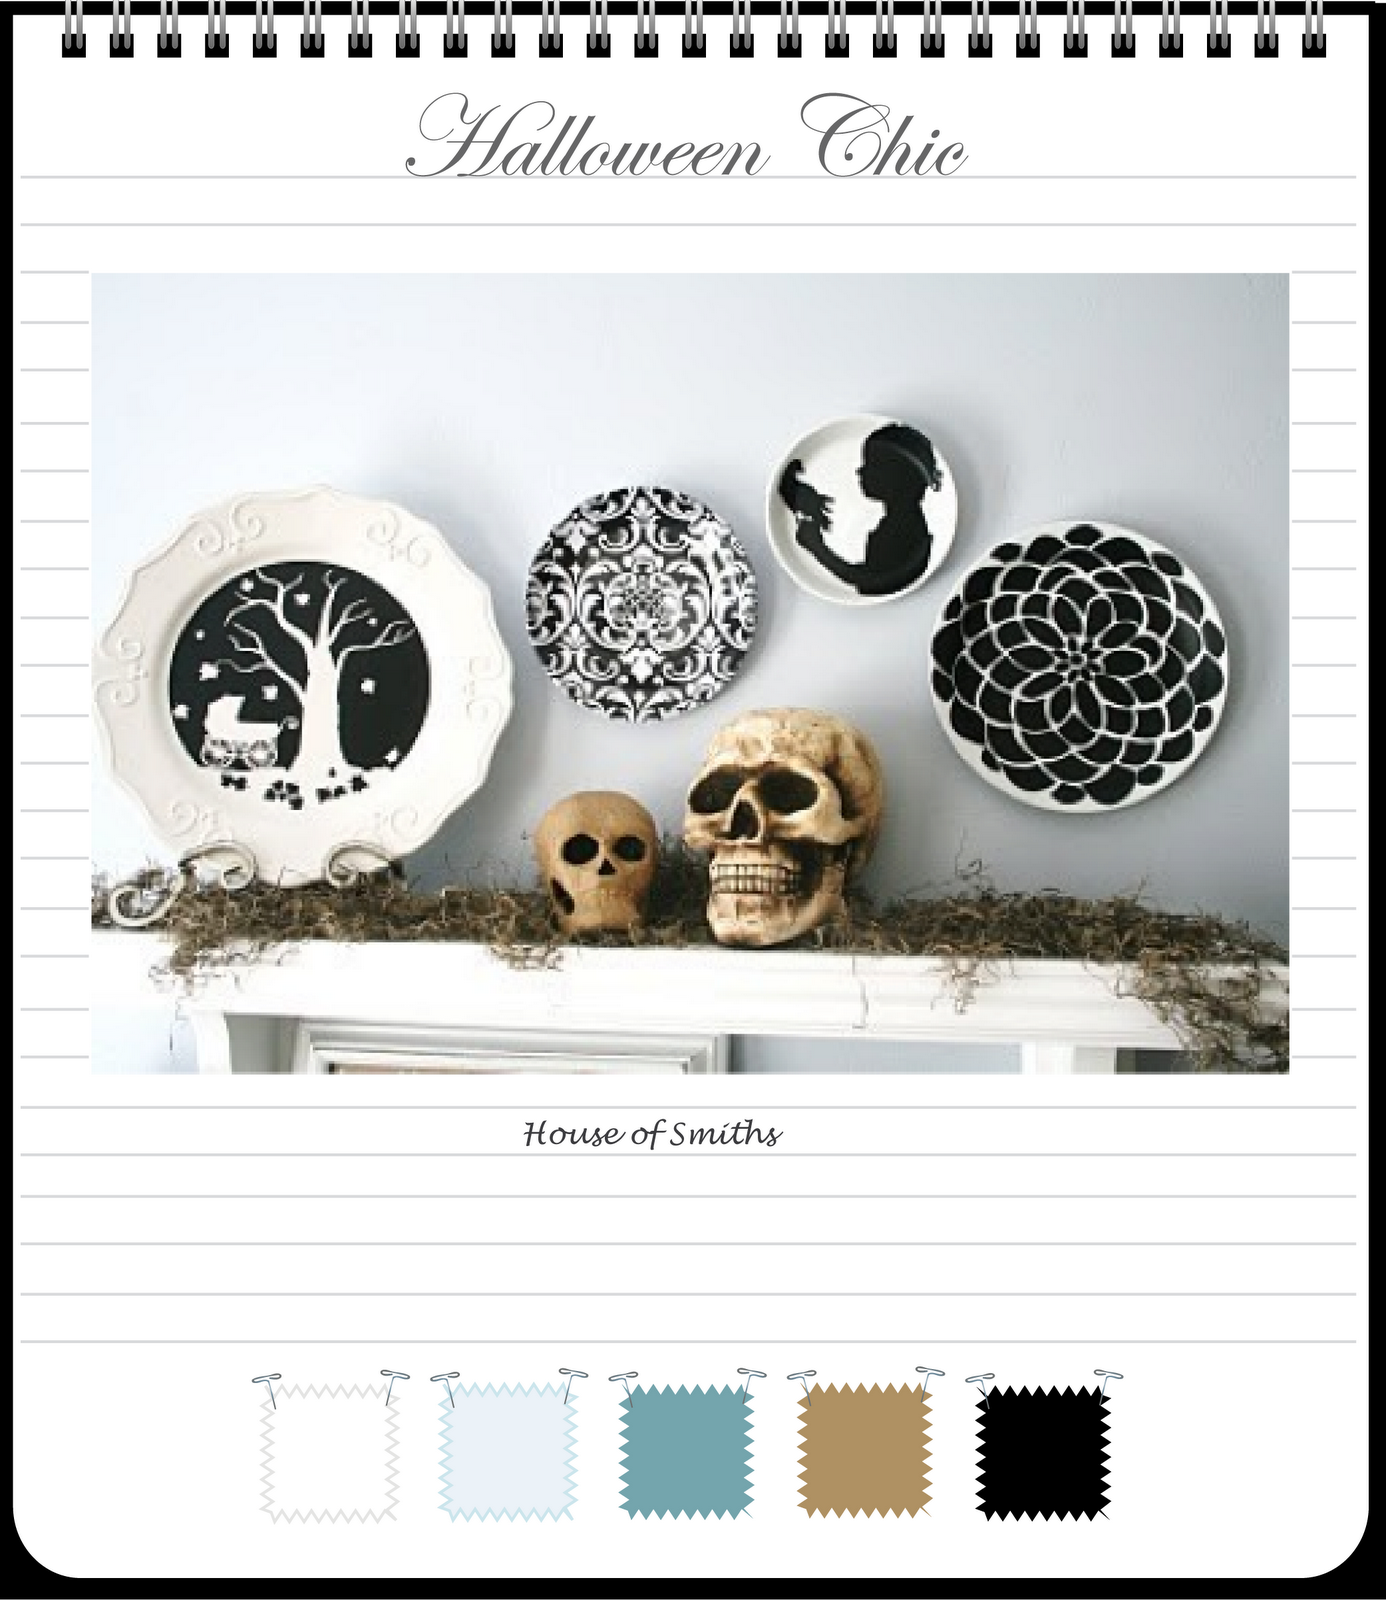 Halloween Chic by Torie Jayne